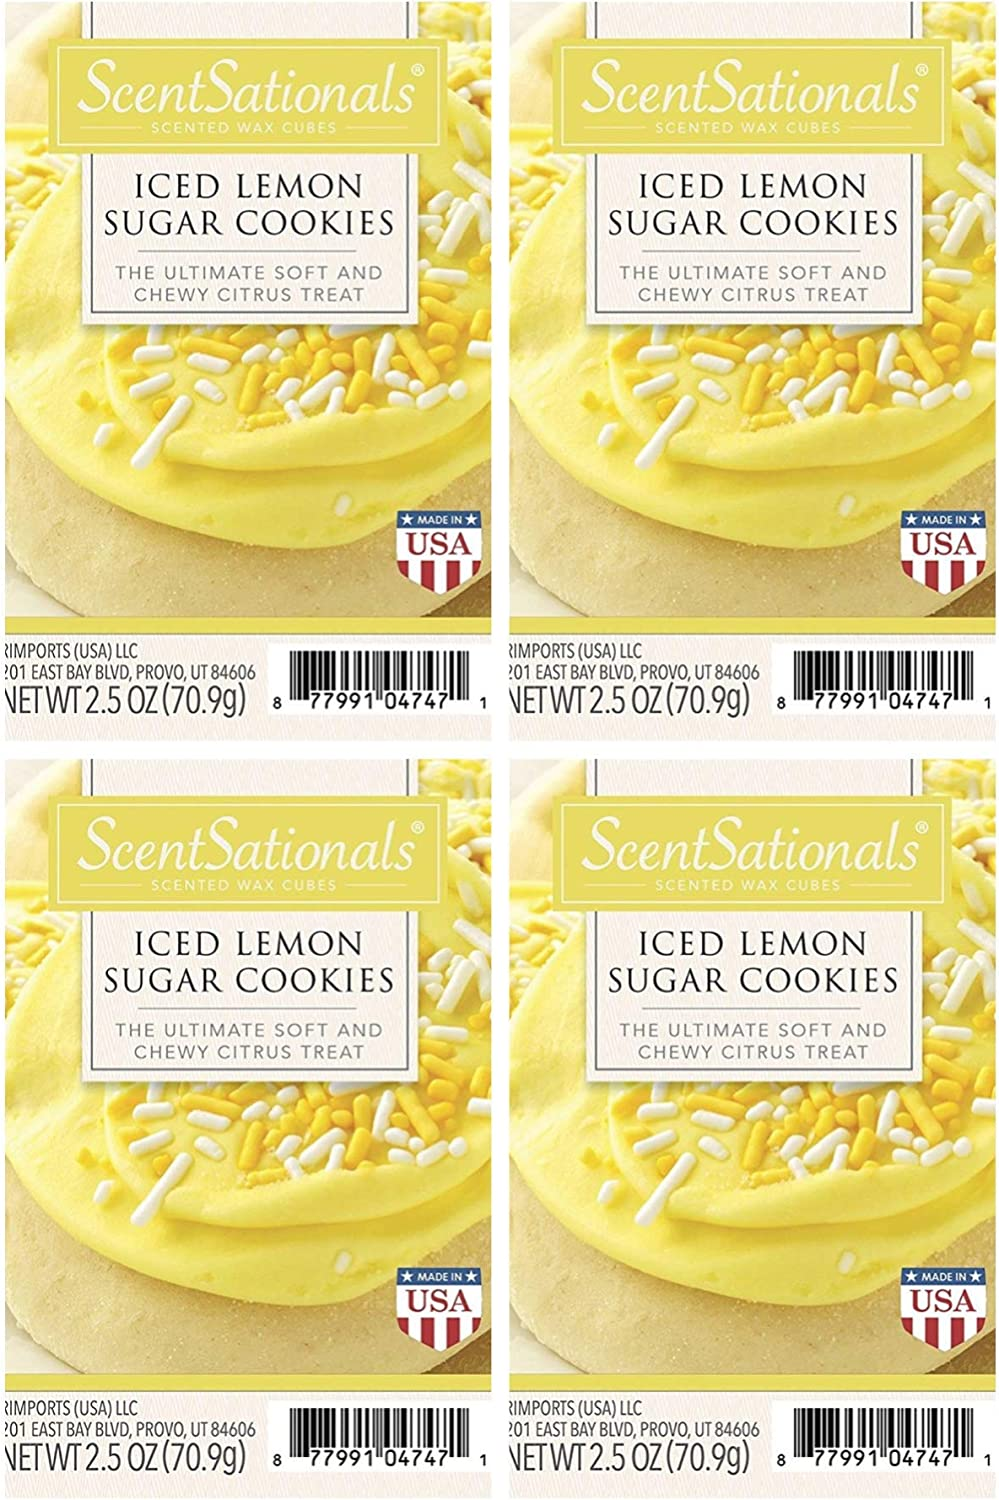 ScentSationals Iced Lemon Sugar Cookies Scented Wax Cubes - 4-Pack